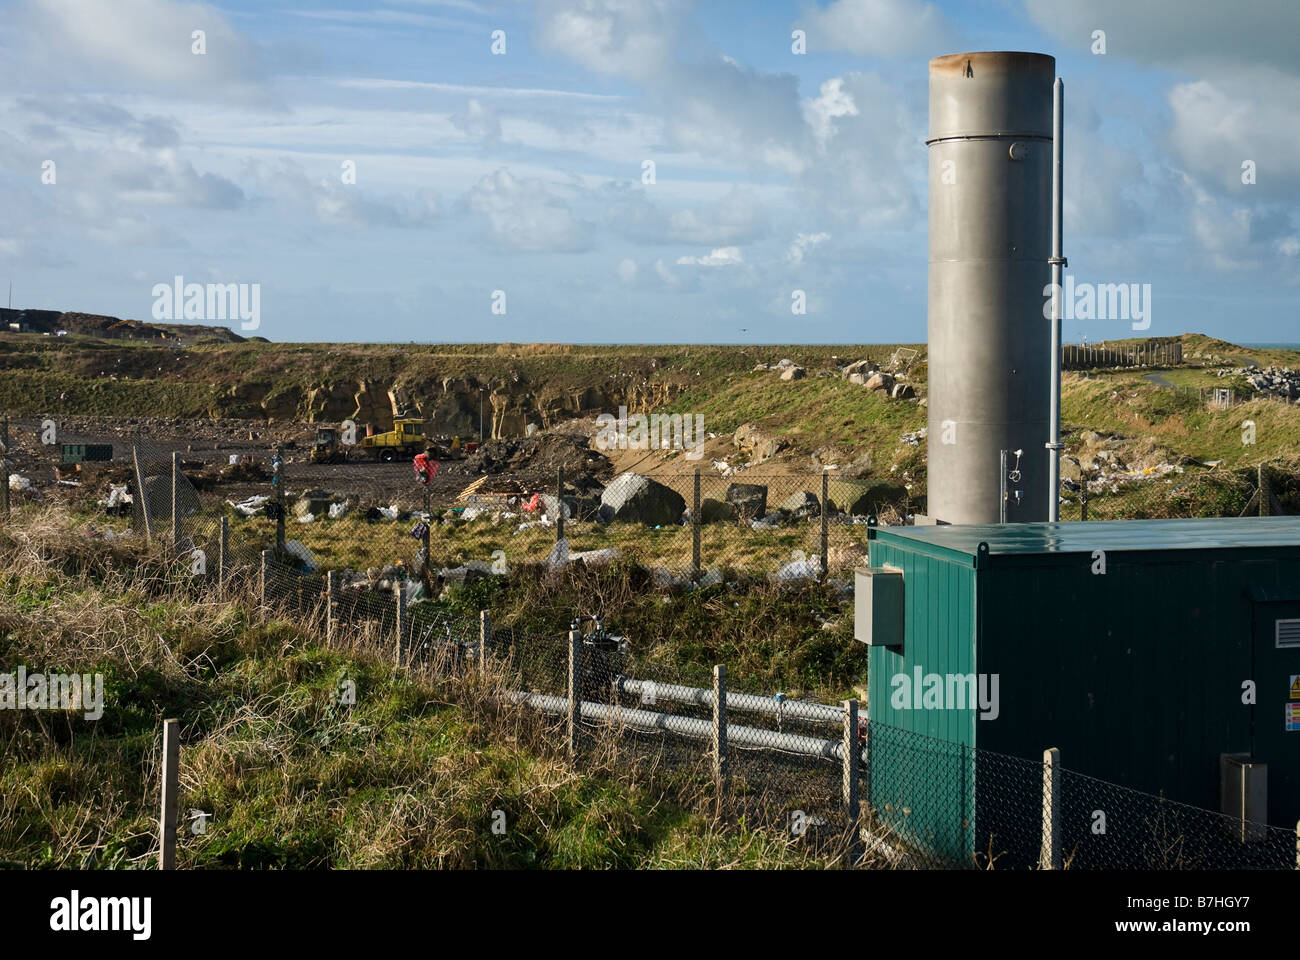 Flare stack at landfill site for burning off methane - Stock Image